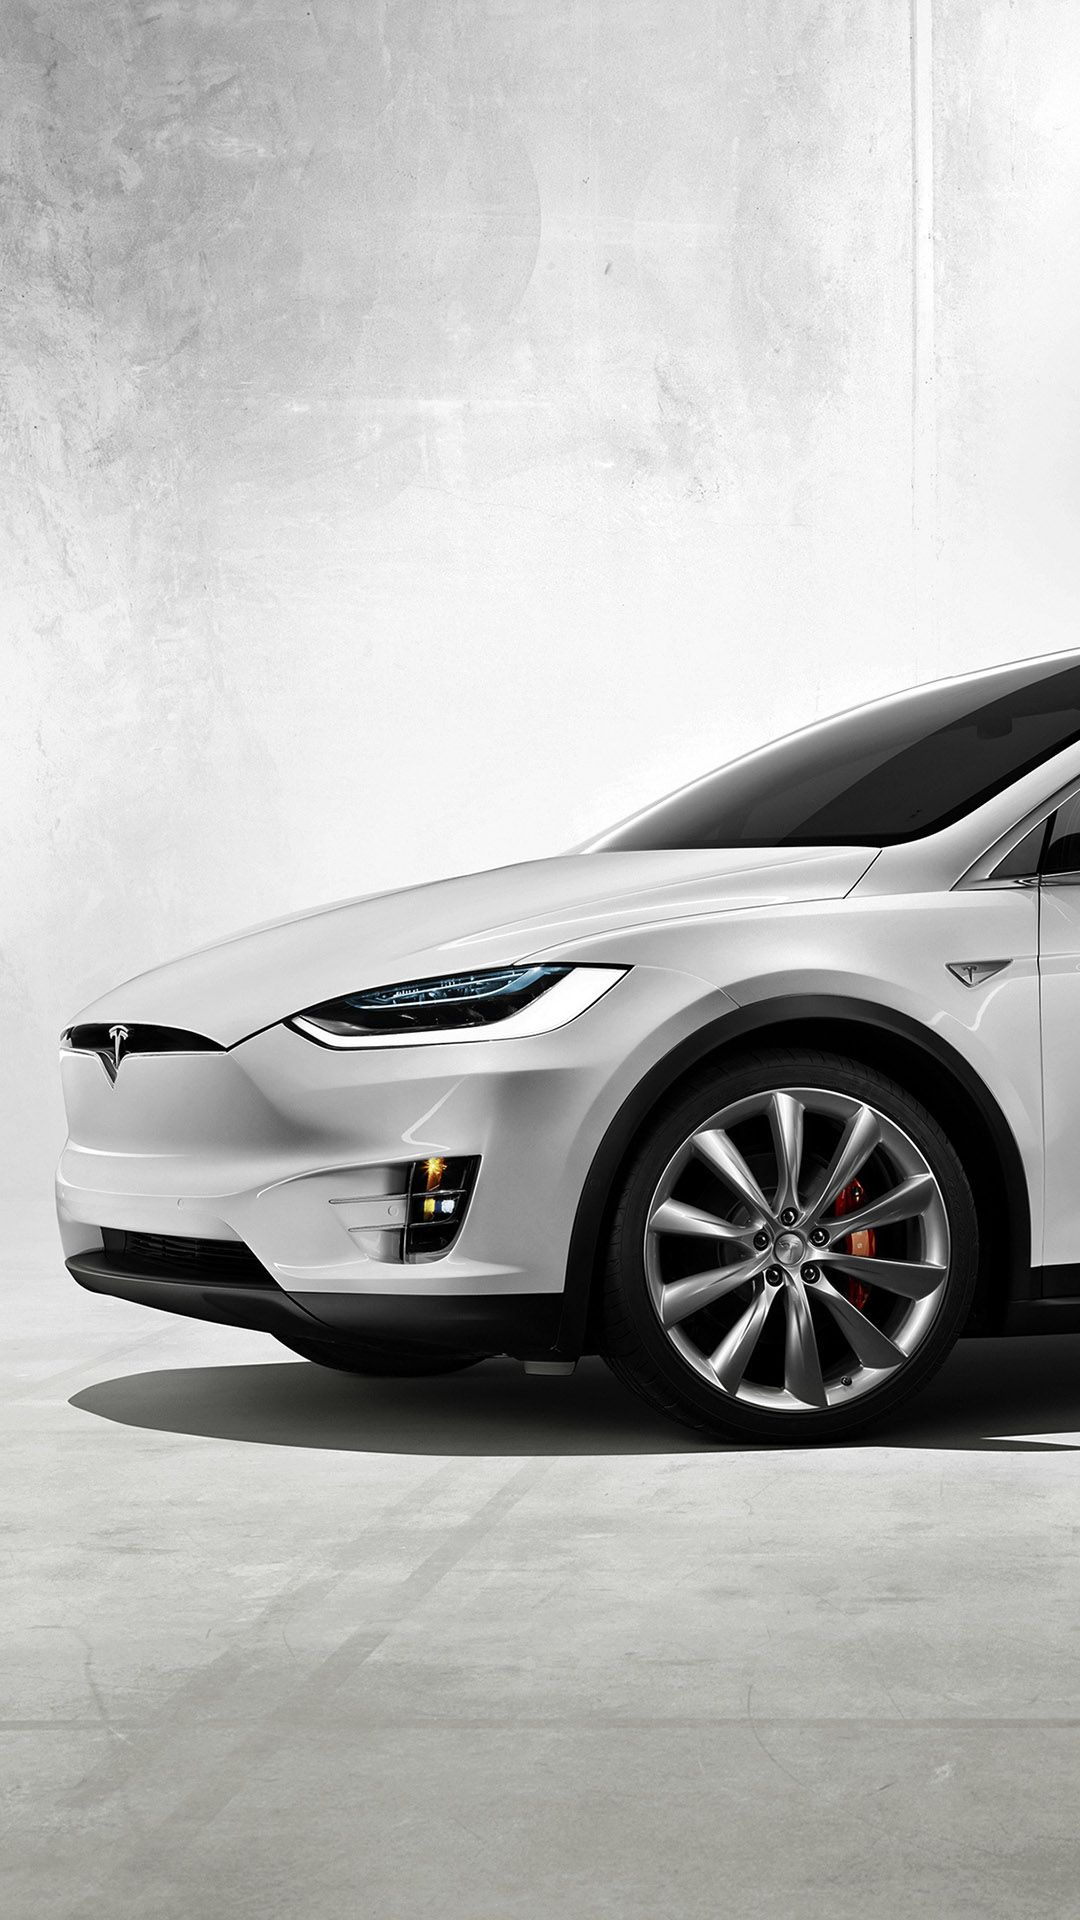 2016 White Tesla Model X Front View Iphone 6 Hd Wallpaper Cuteiphonewallpaperstumblr Iphon Tesla Model X Model X White Tesla Model X